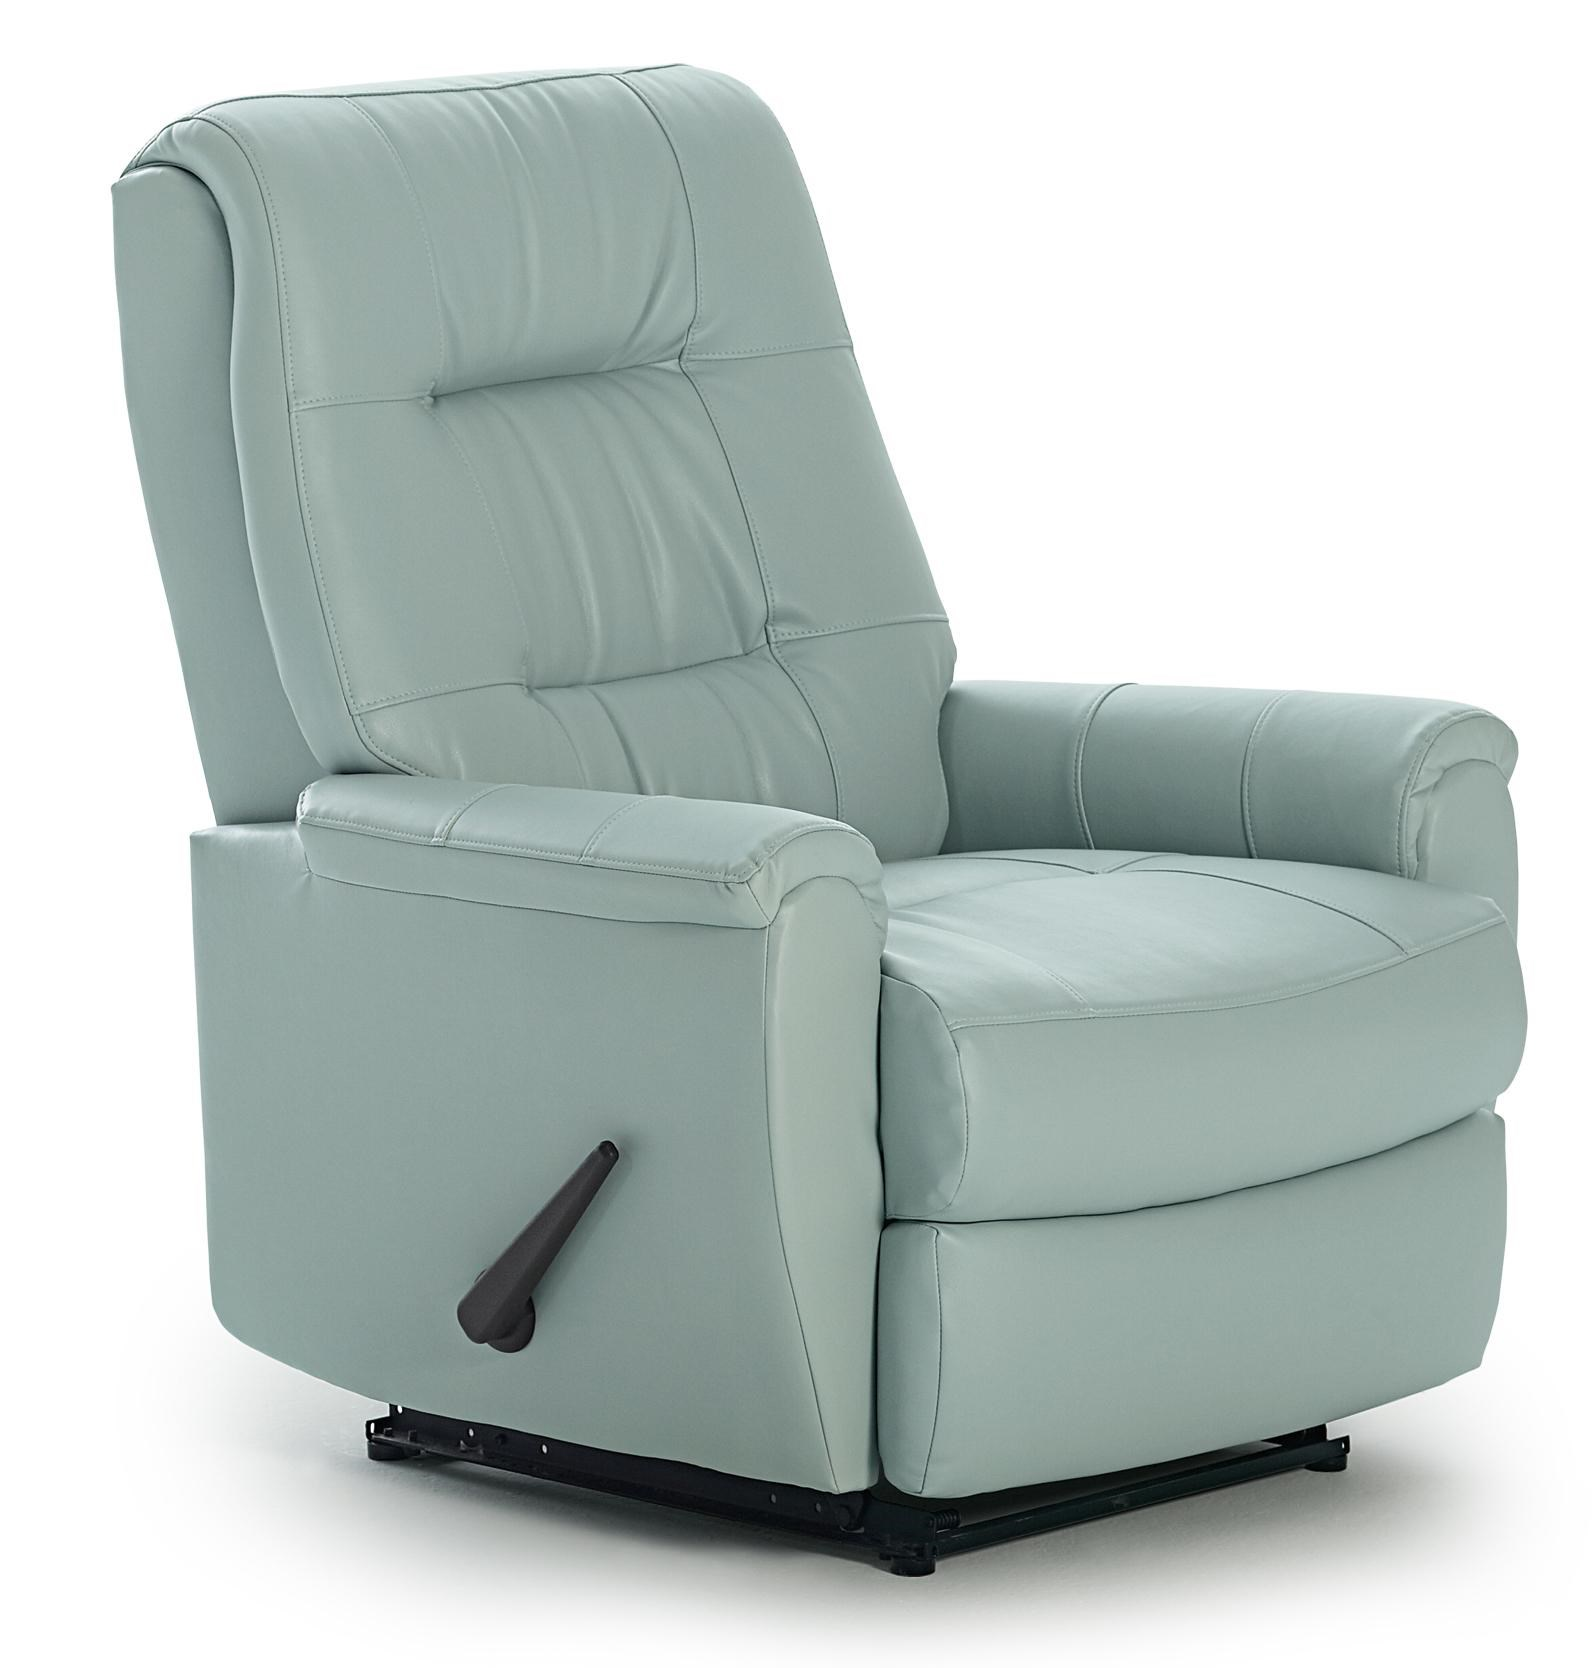 Best Rated Small Recliners Best Home Furnishings Petite Recliners 2ap77u Felicia Power Rocker